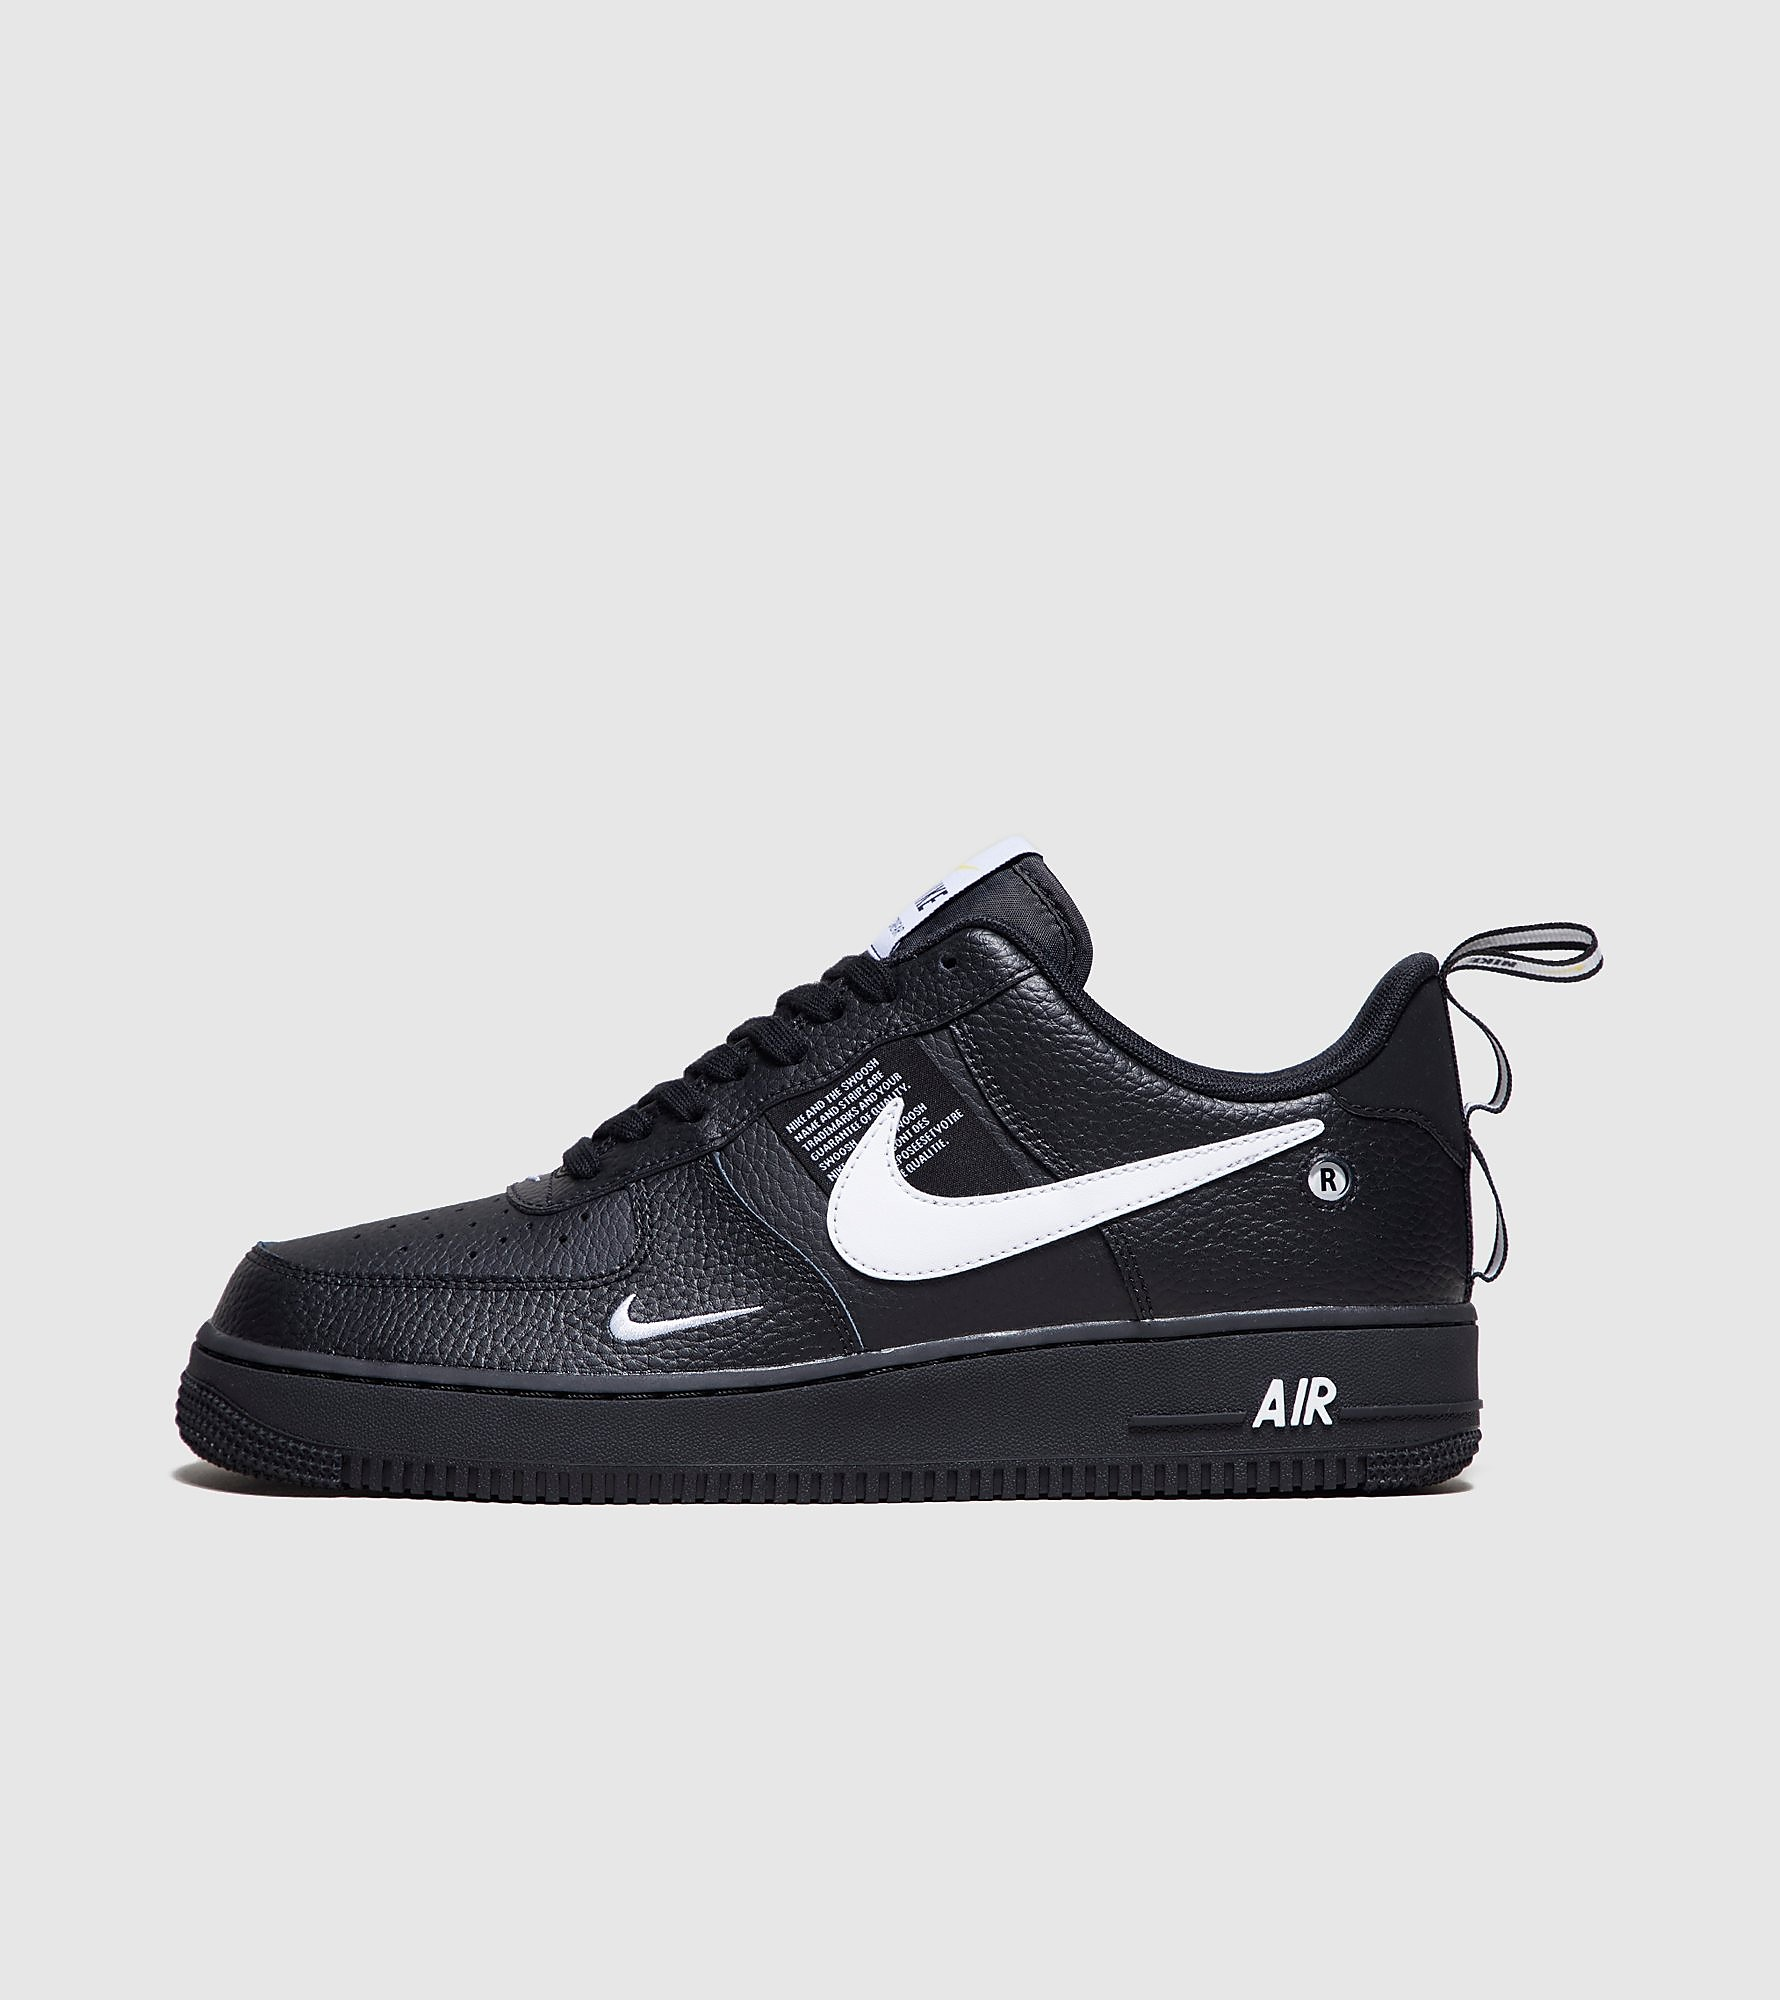 Nike Air Force 1 '07 LV8 Utility Low